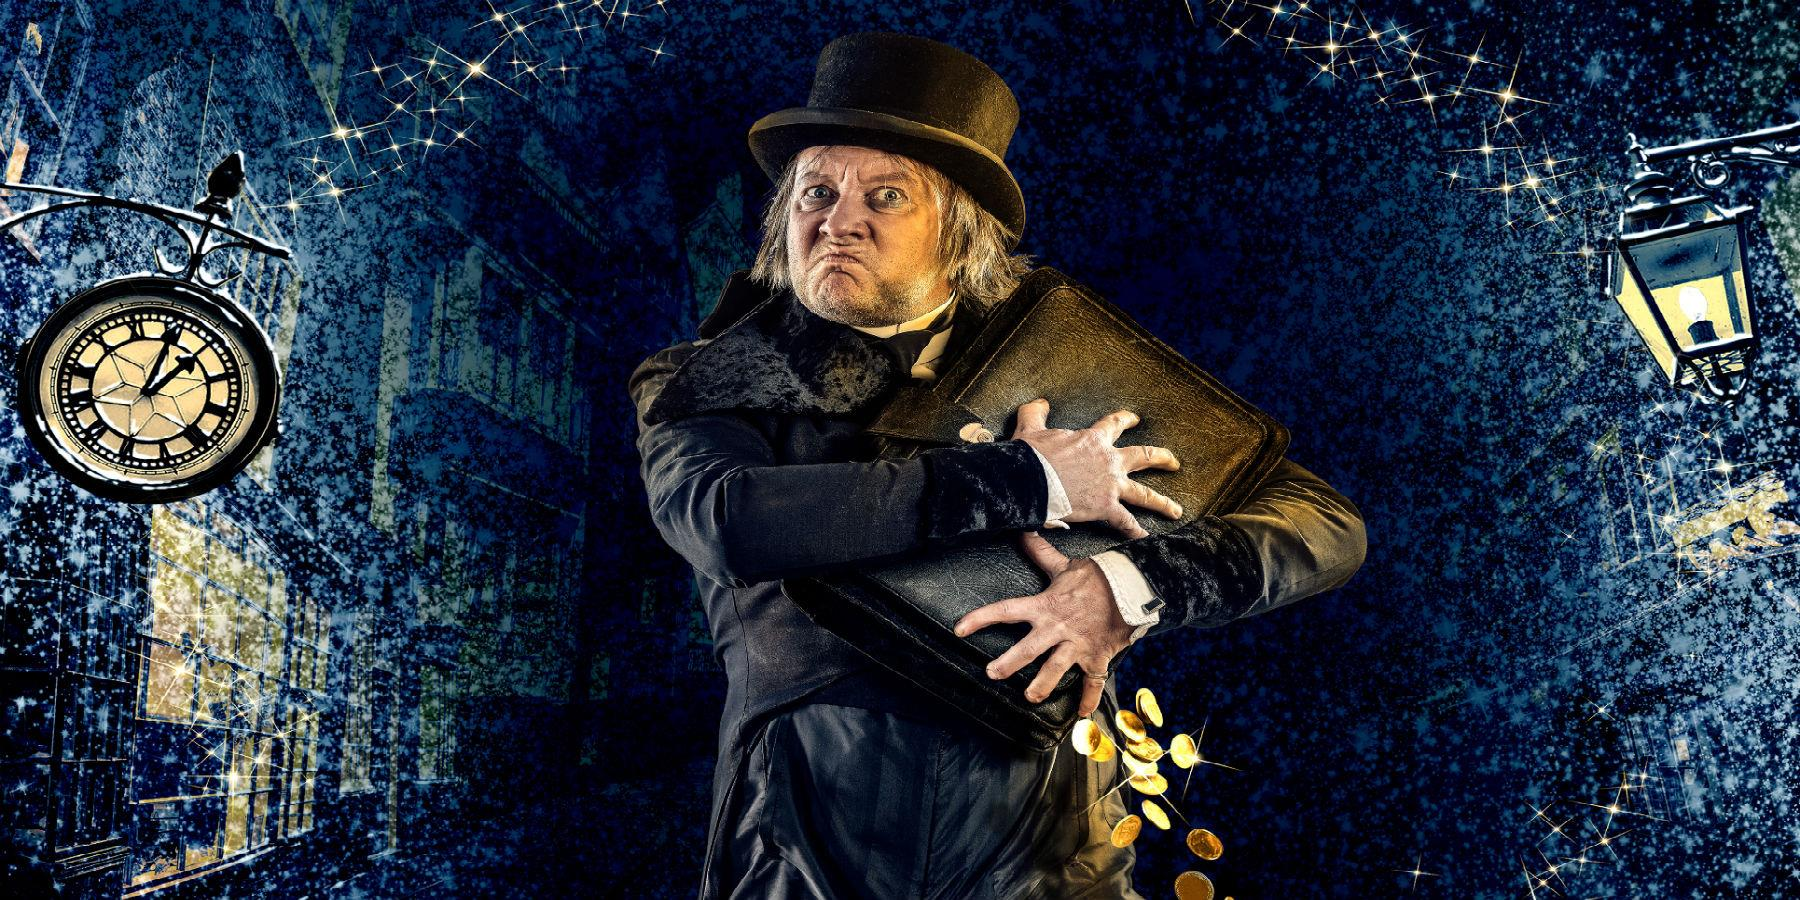 Curve Theatre presents: Scrooge the Musical